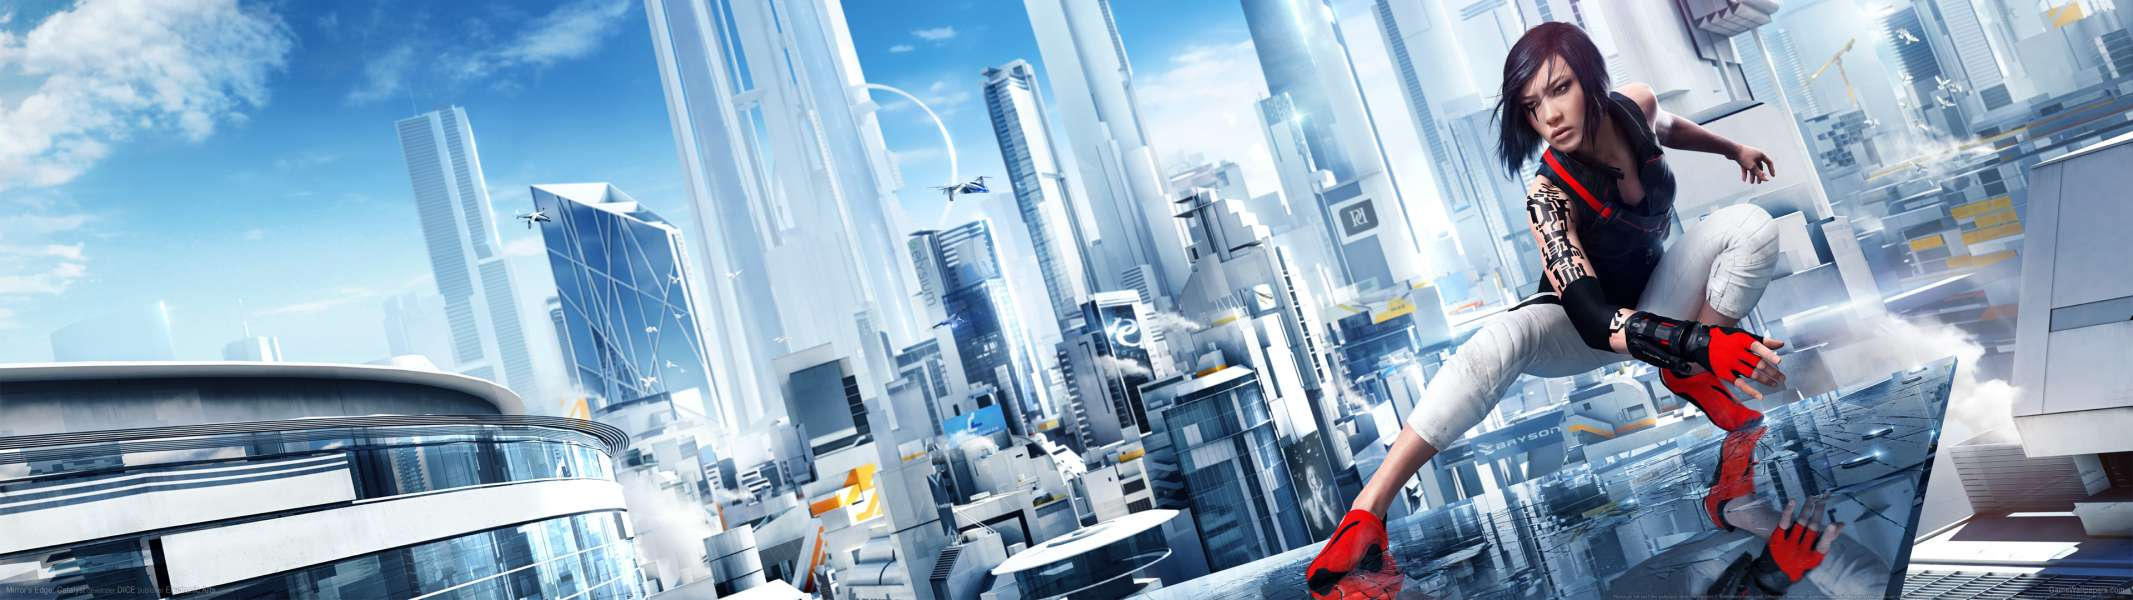 Mirror's Edge: Catalyst dual screen fondo de escritorio